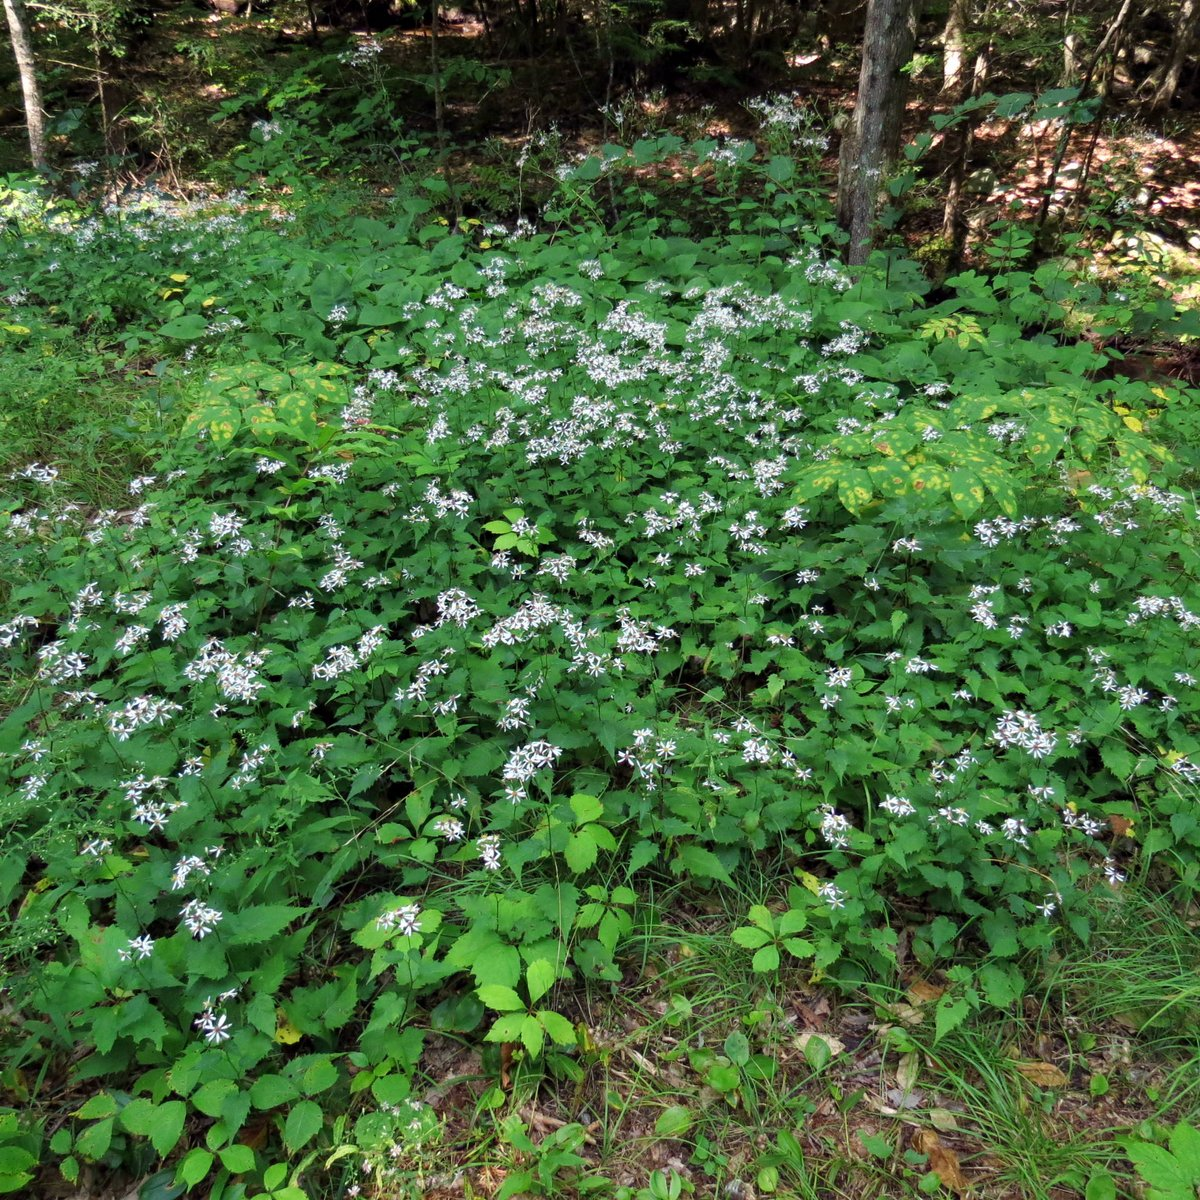 14. White Wood Aster aka Aster divaricatus